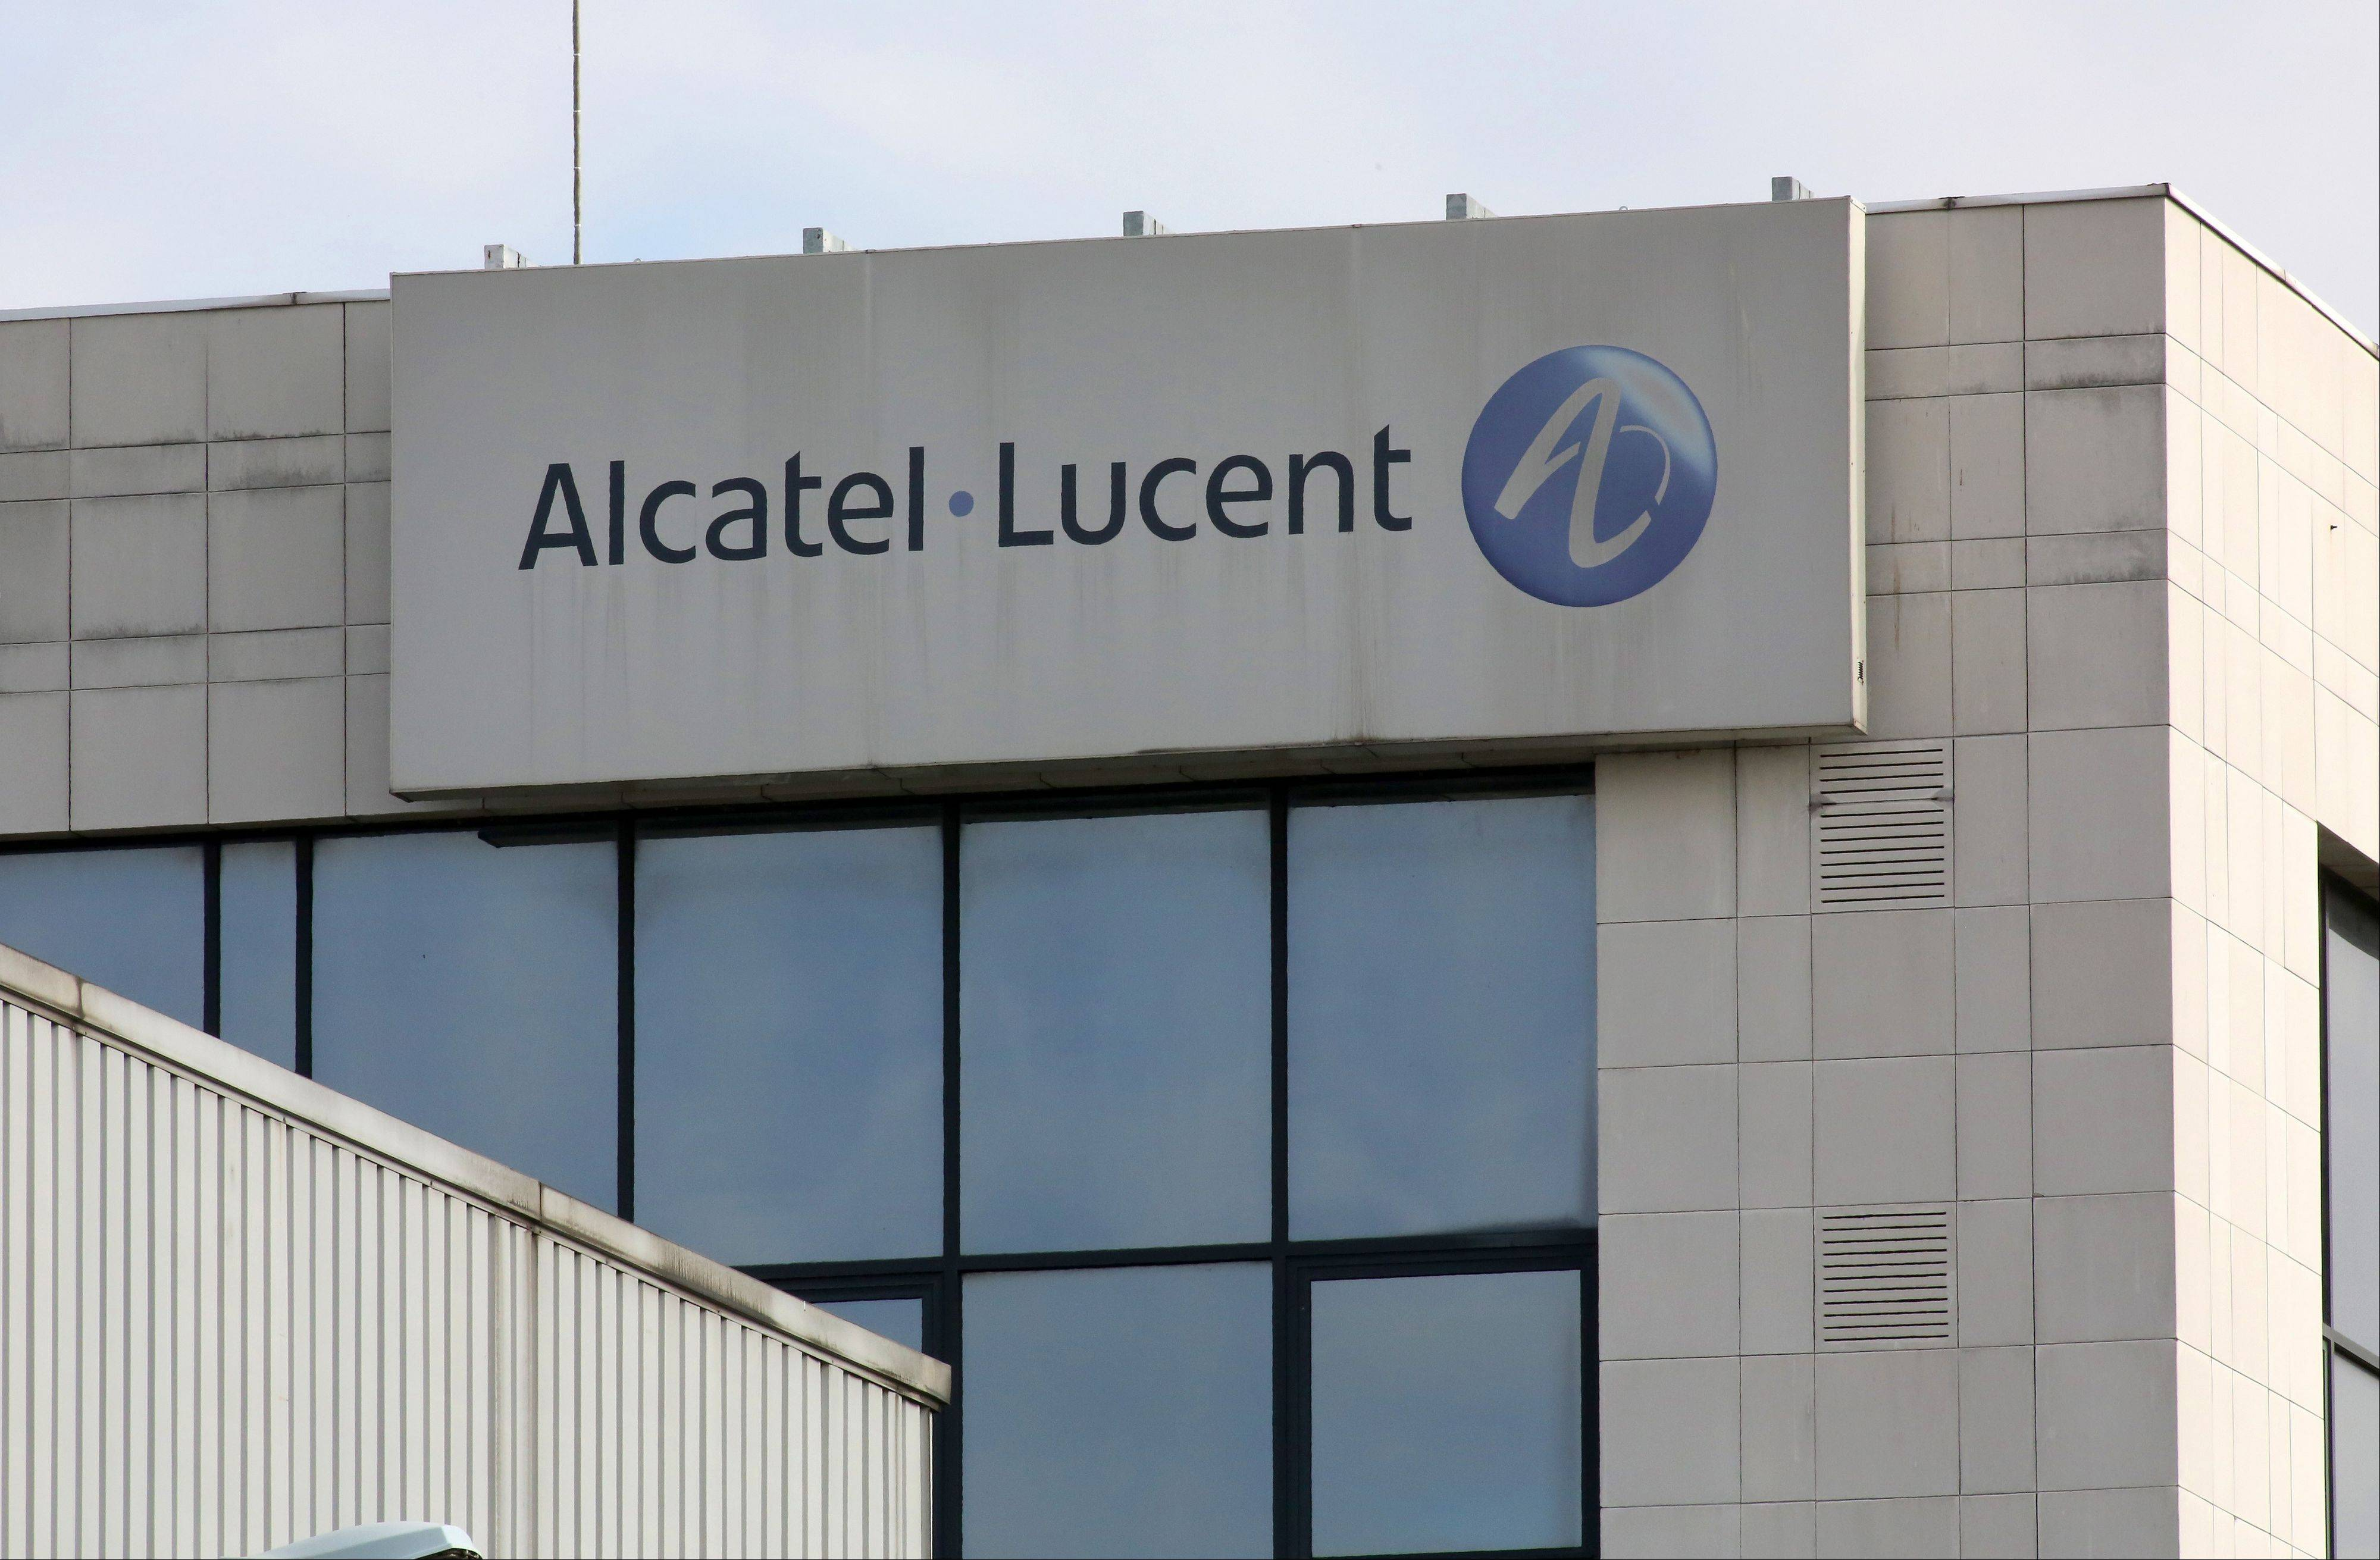 French-U.S. telecommunications equipment company Alcatel-Lucent SA says it is in talks to sell its business that deals with corporate clients to China Huaxin for around $362 million.